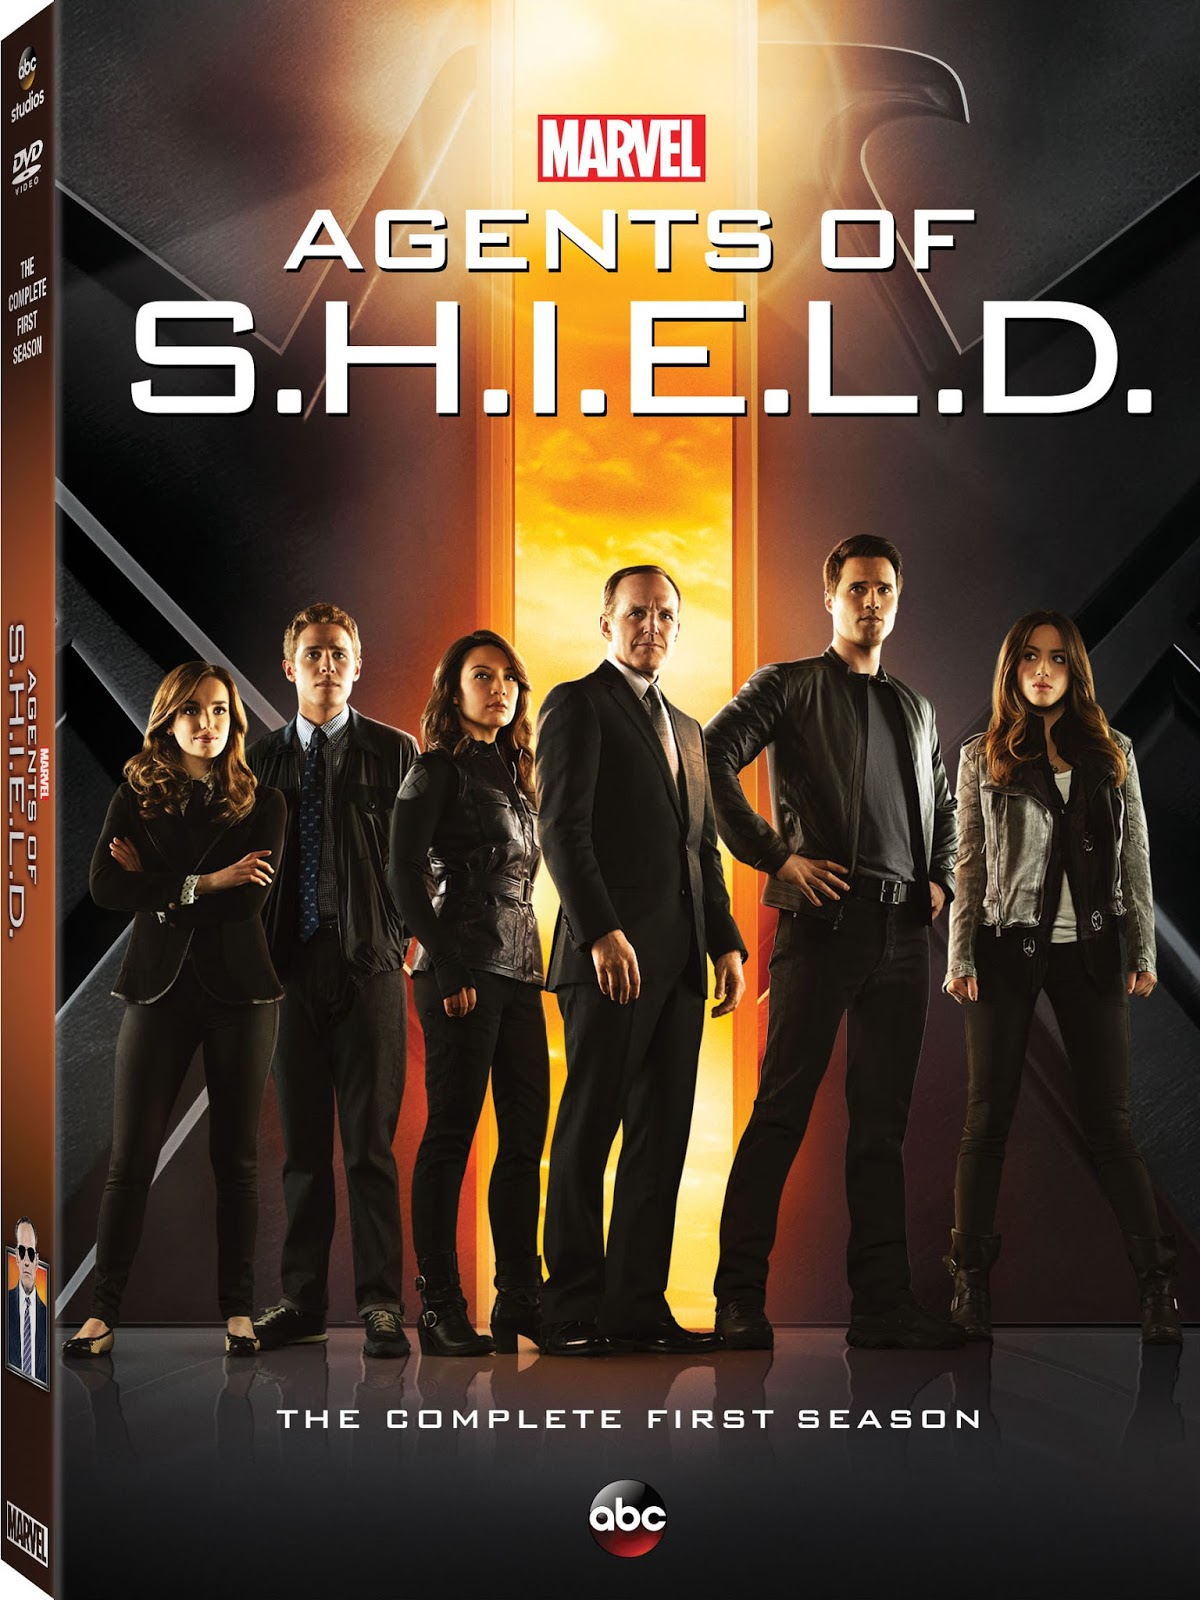 Focused on the Magic | Marvel's AGENTS OF S.H.I.E.L.D. coming t Blu-ray and DVD September 9th